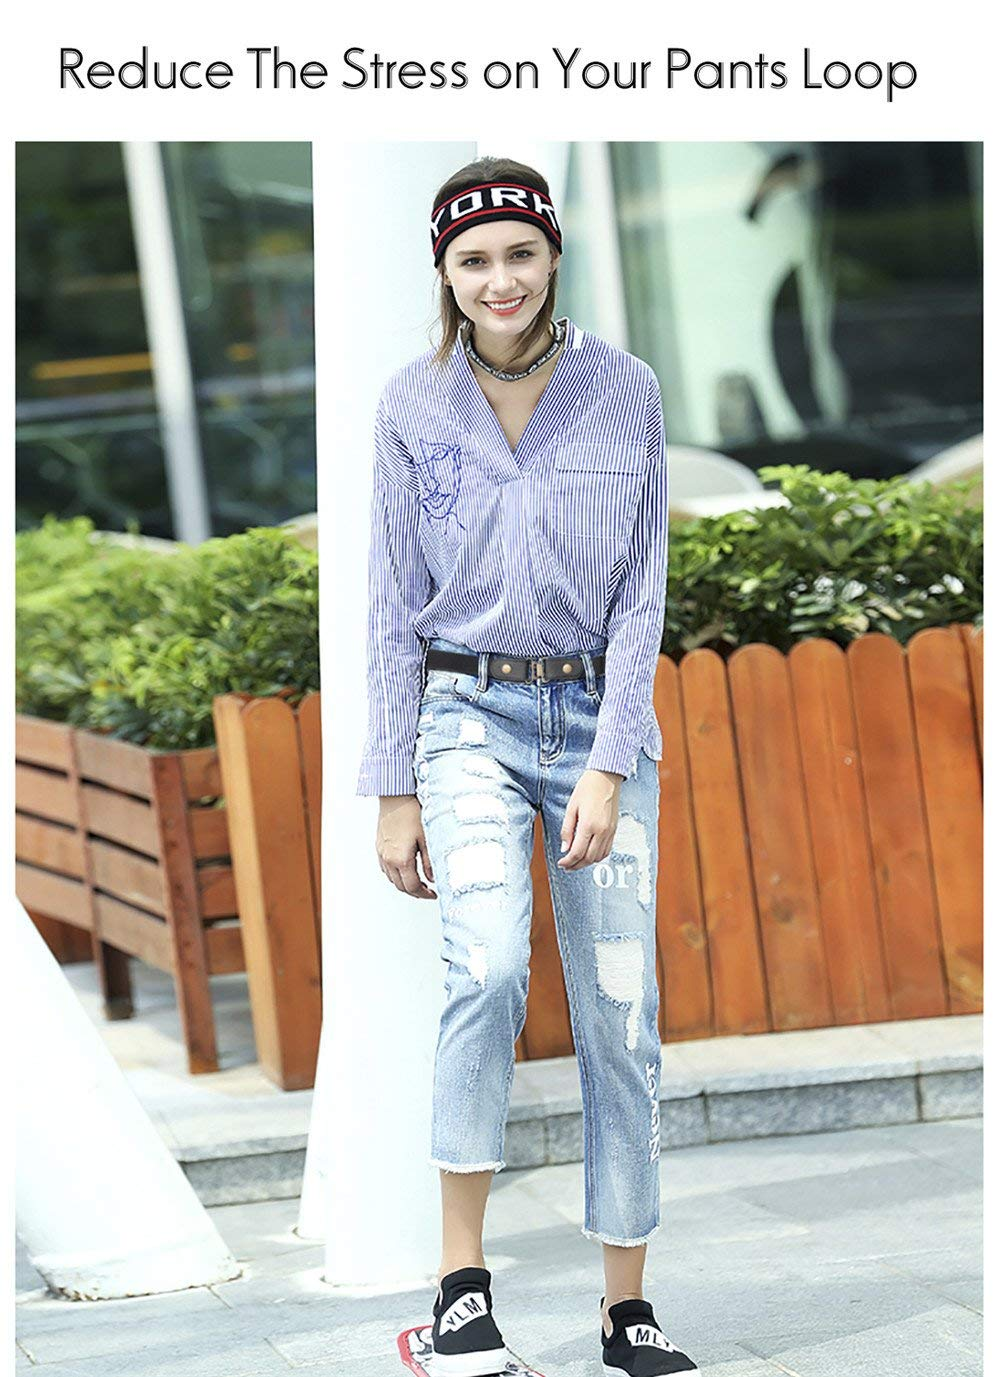 No Buckle Invisible Belt For Women Elastic Waist Belt for Jeans Pants Dresses